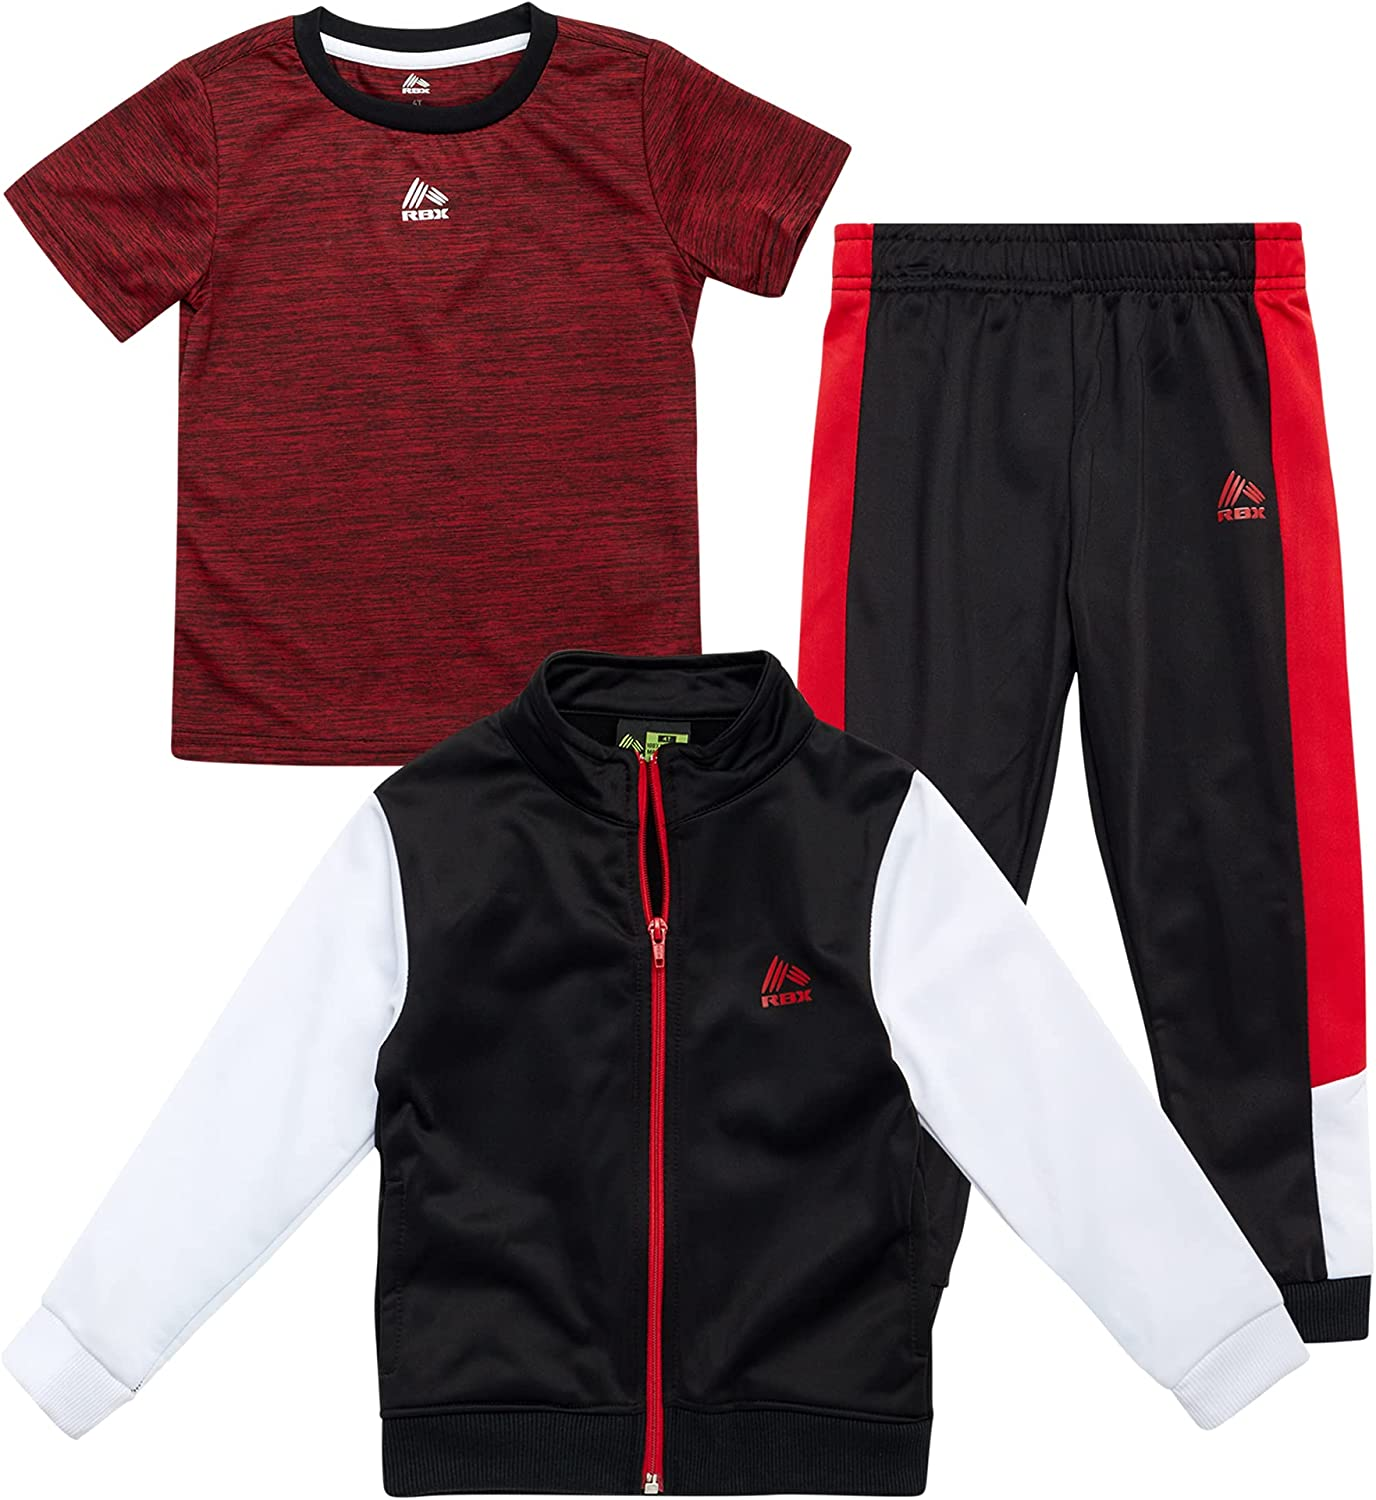 RBX Baby Boys' Jogger Set - 3-Piece T-Shirt, Sweatshirt, and Joggers Playwear Set, Size 12 Months, Black-Red